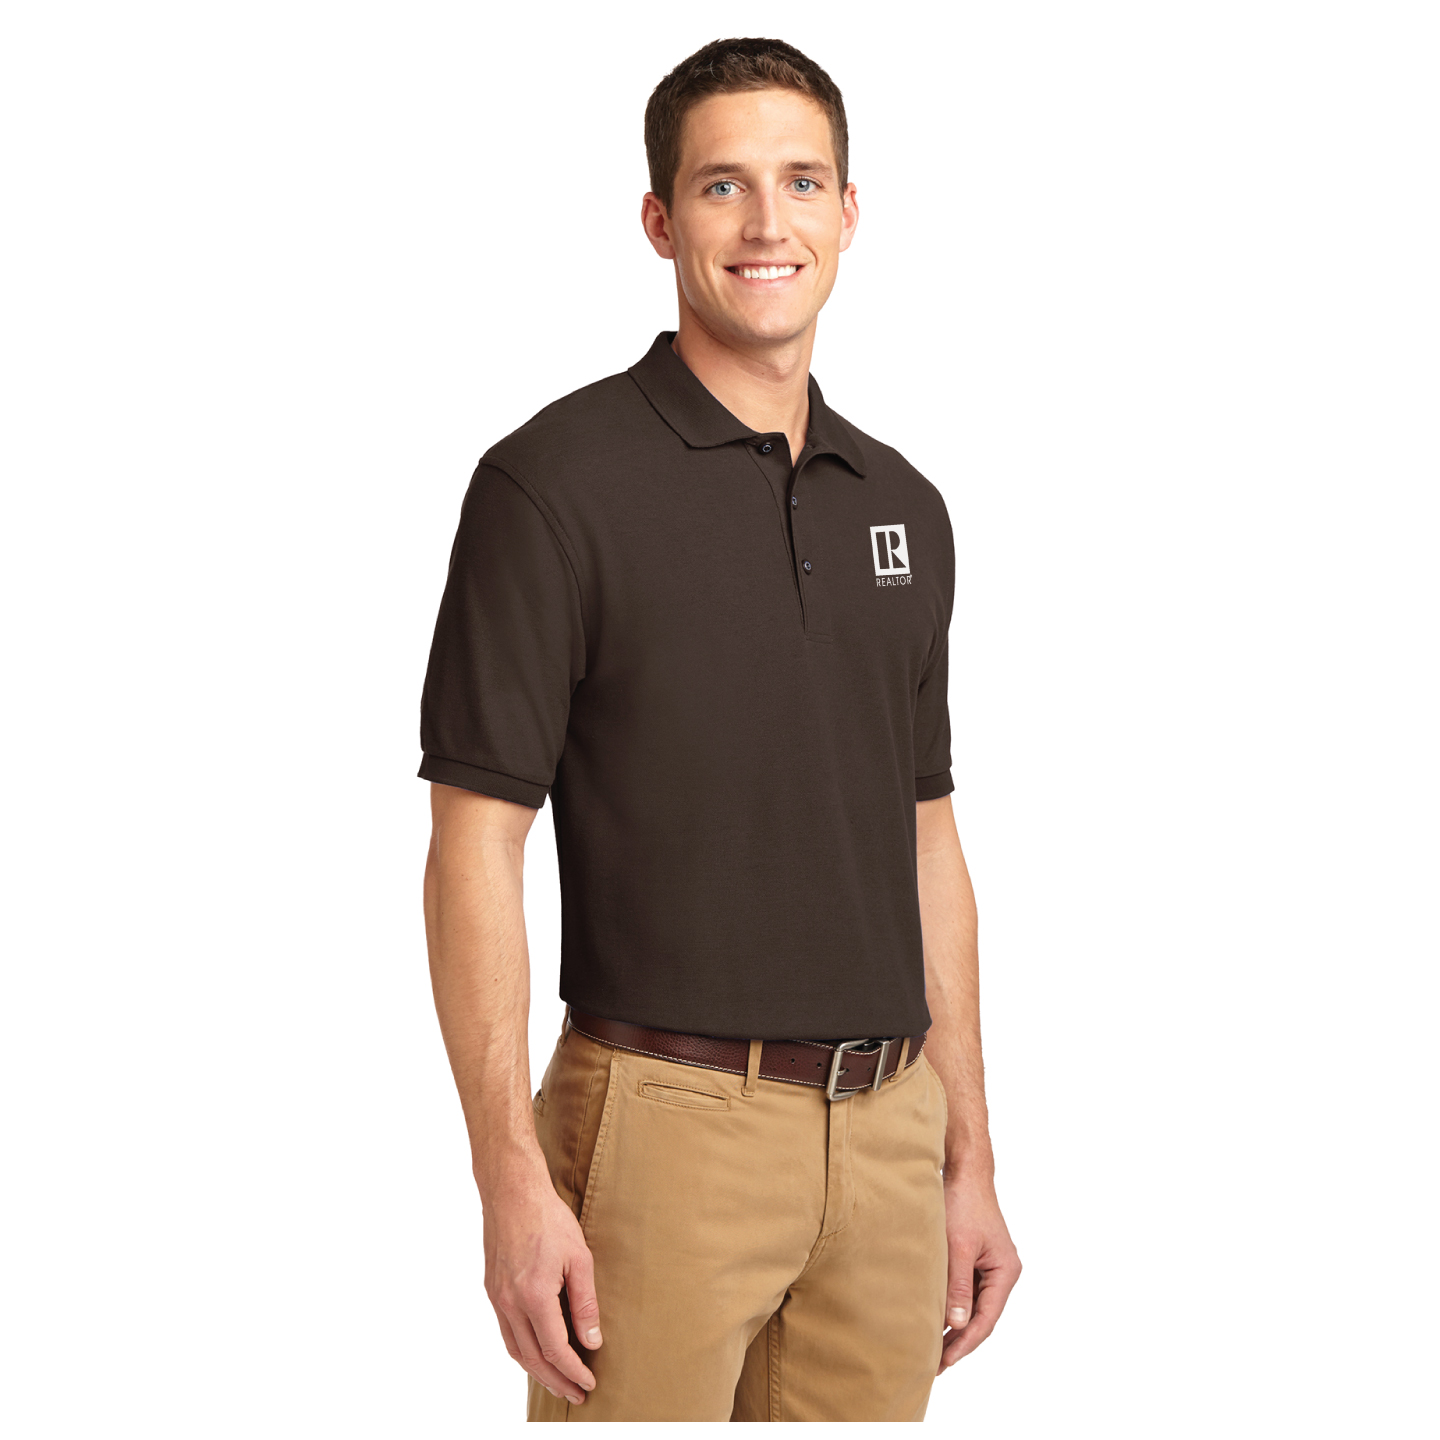 Mens Tall Pique Polo Shirt - RCG1110T